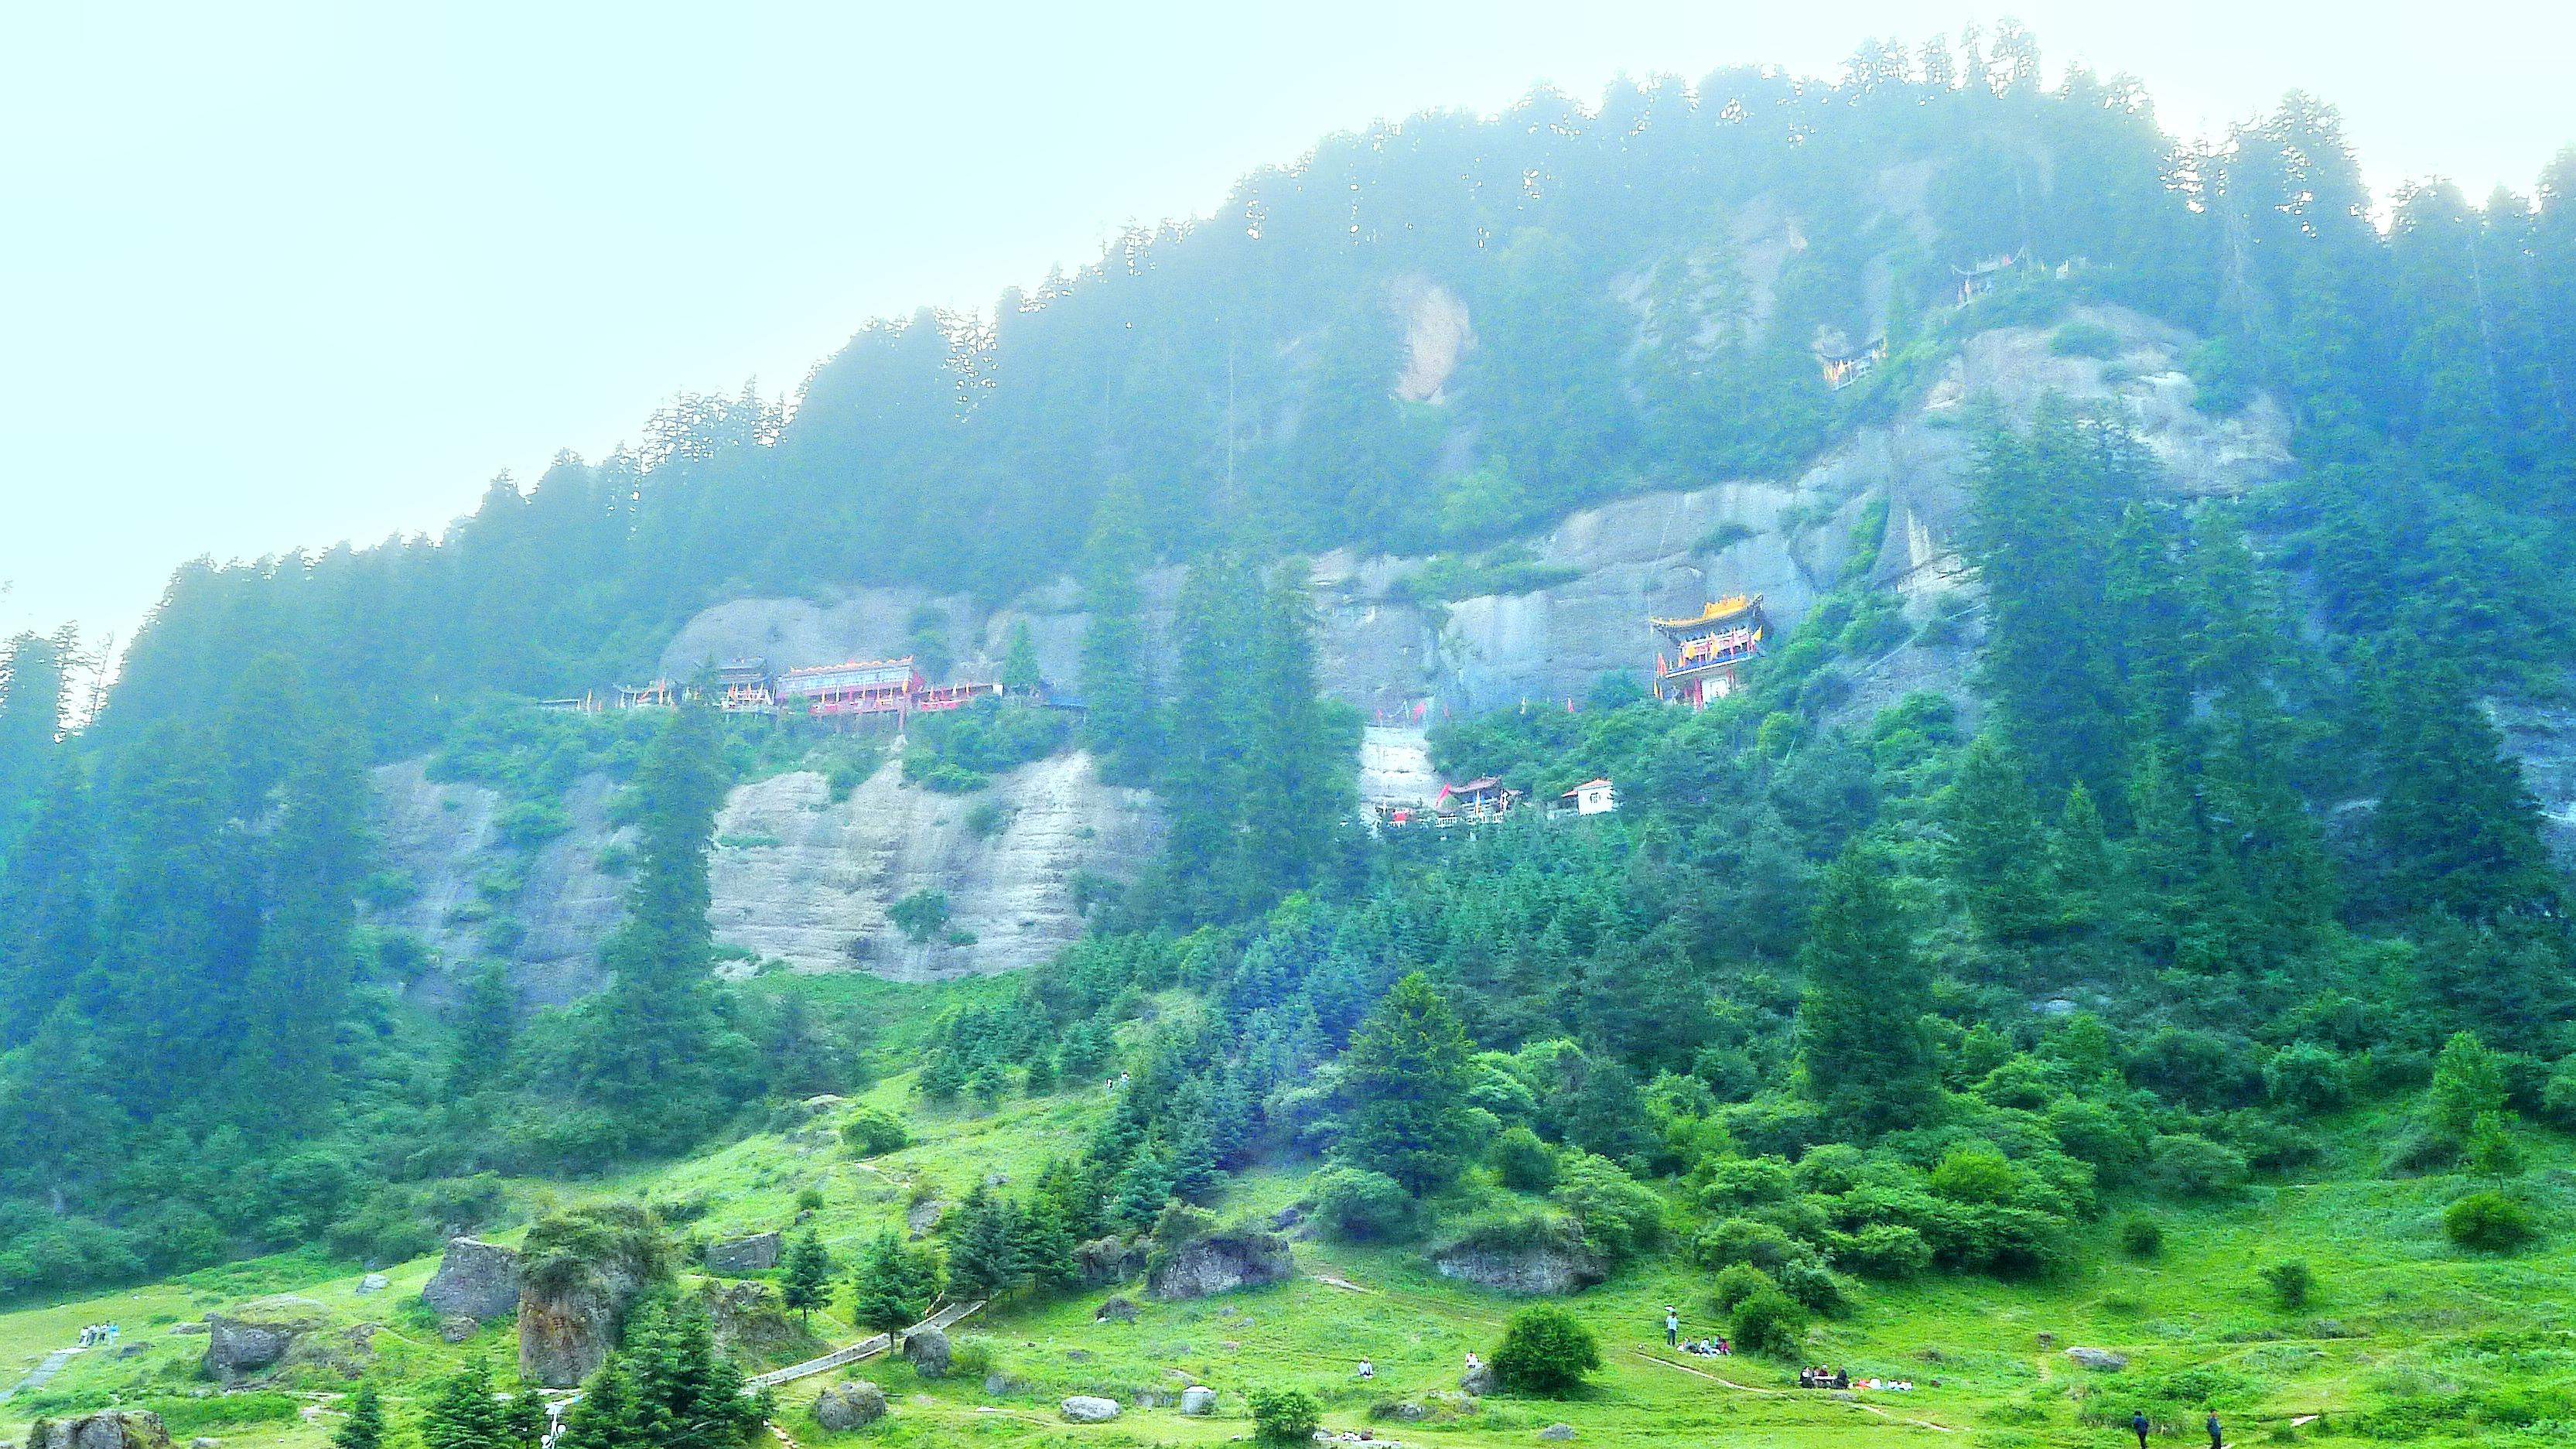 Songmingyan National Forest Park